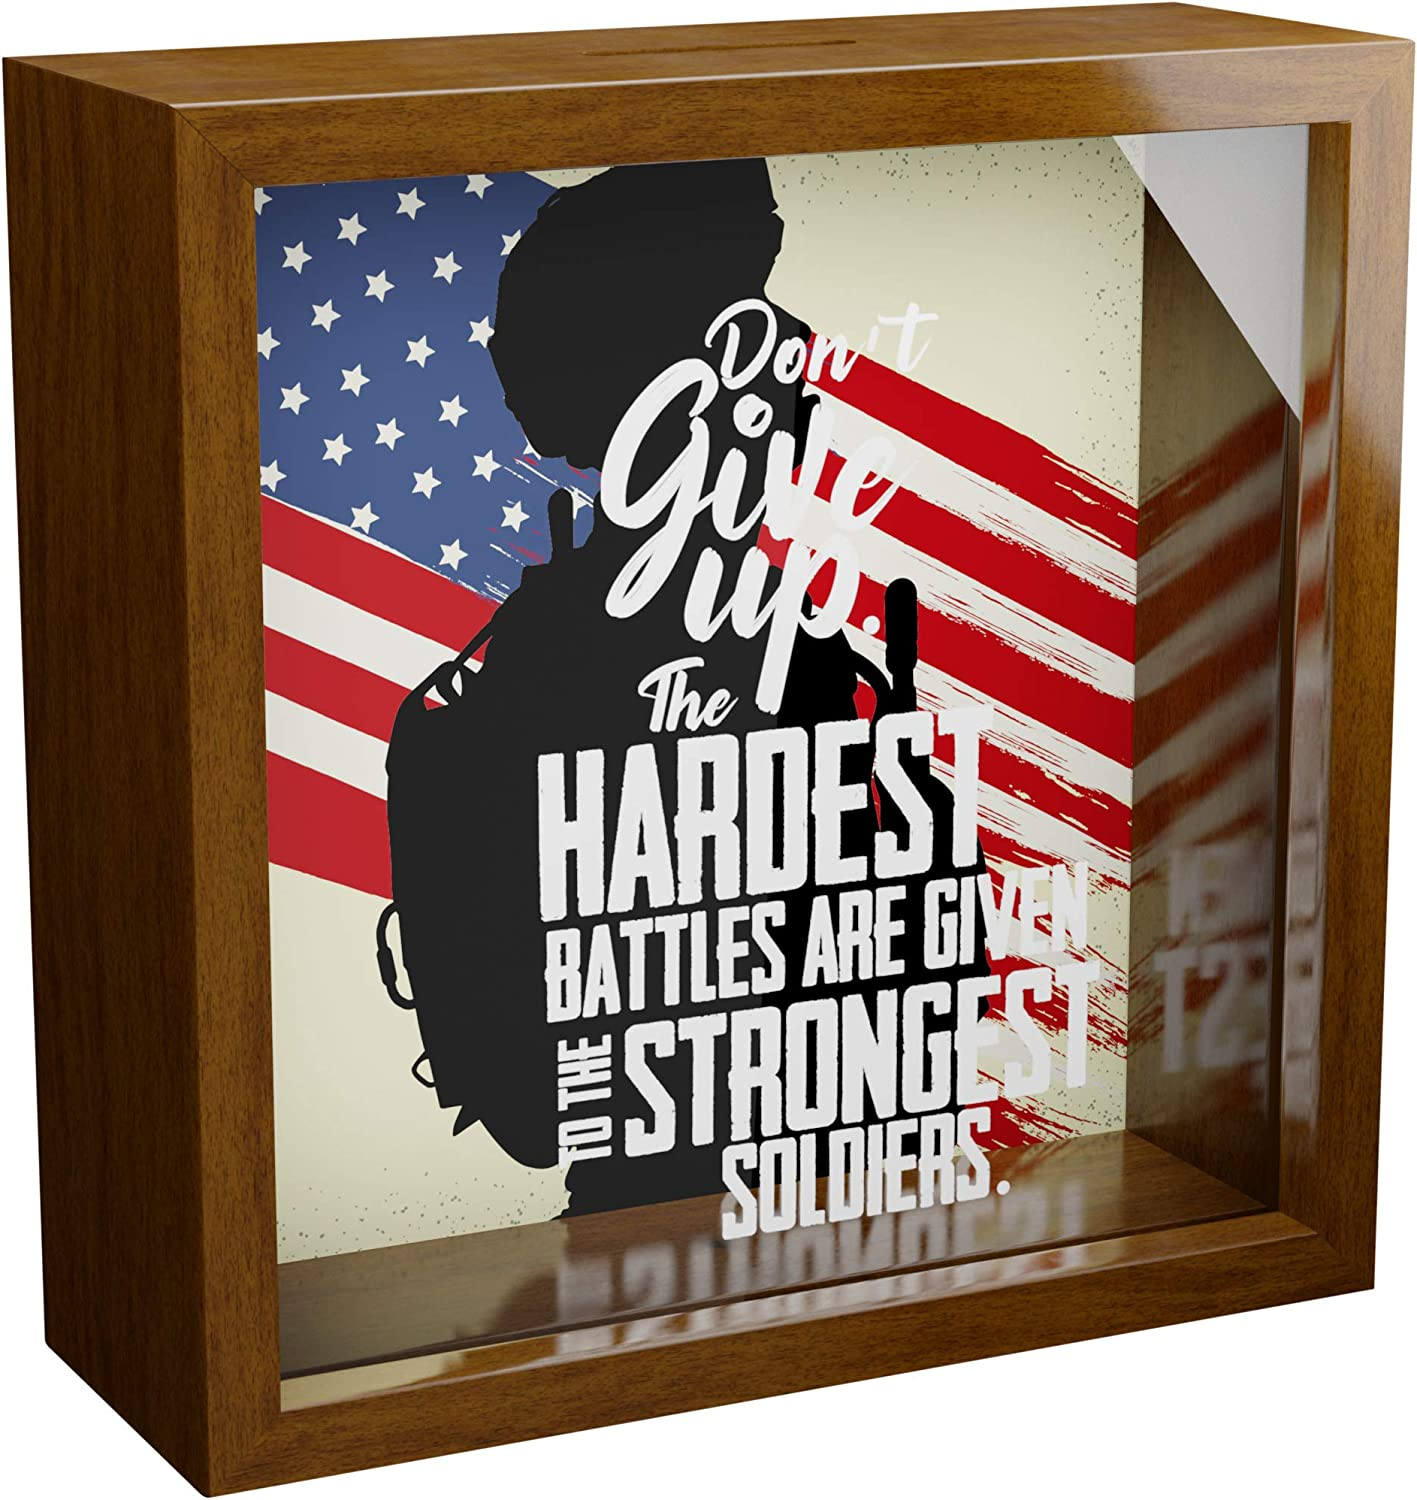 Army Wall Decor | 6x6x2 Wooden Keepsake Box | Memorabilia Shadow Box with Glass Front | Retirement Gift for Soldiers | Military Themed Gifts | Great as Home Decorations